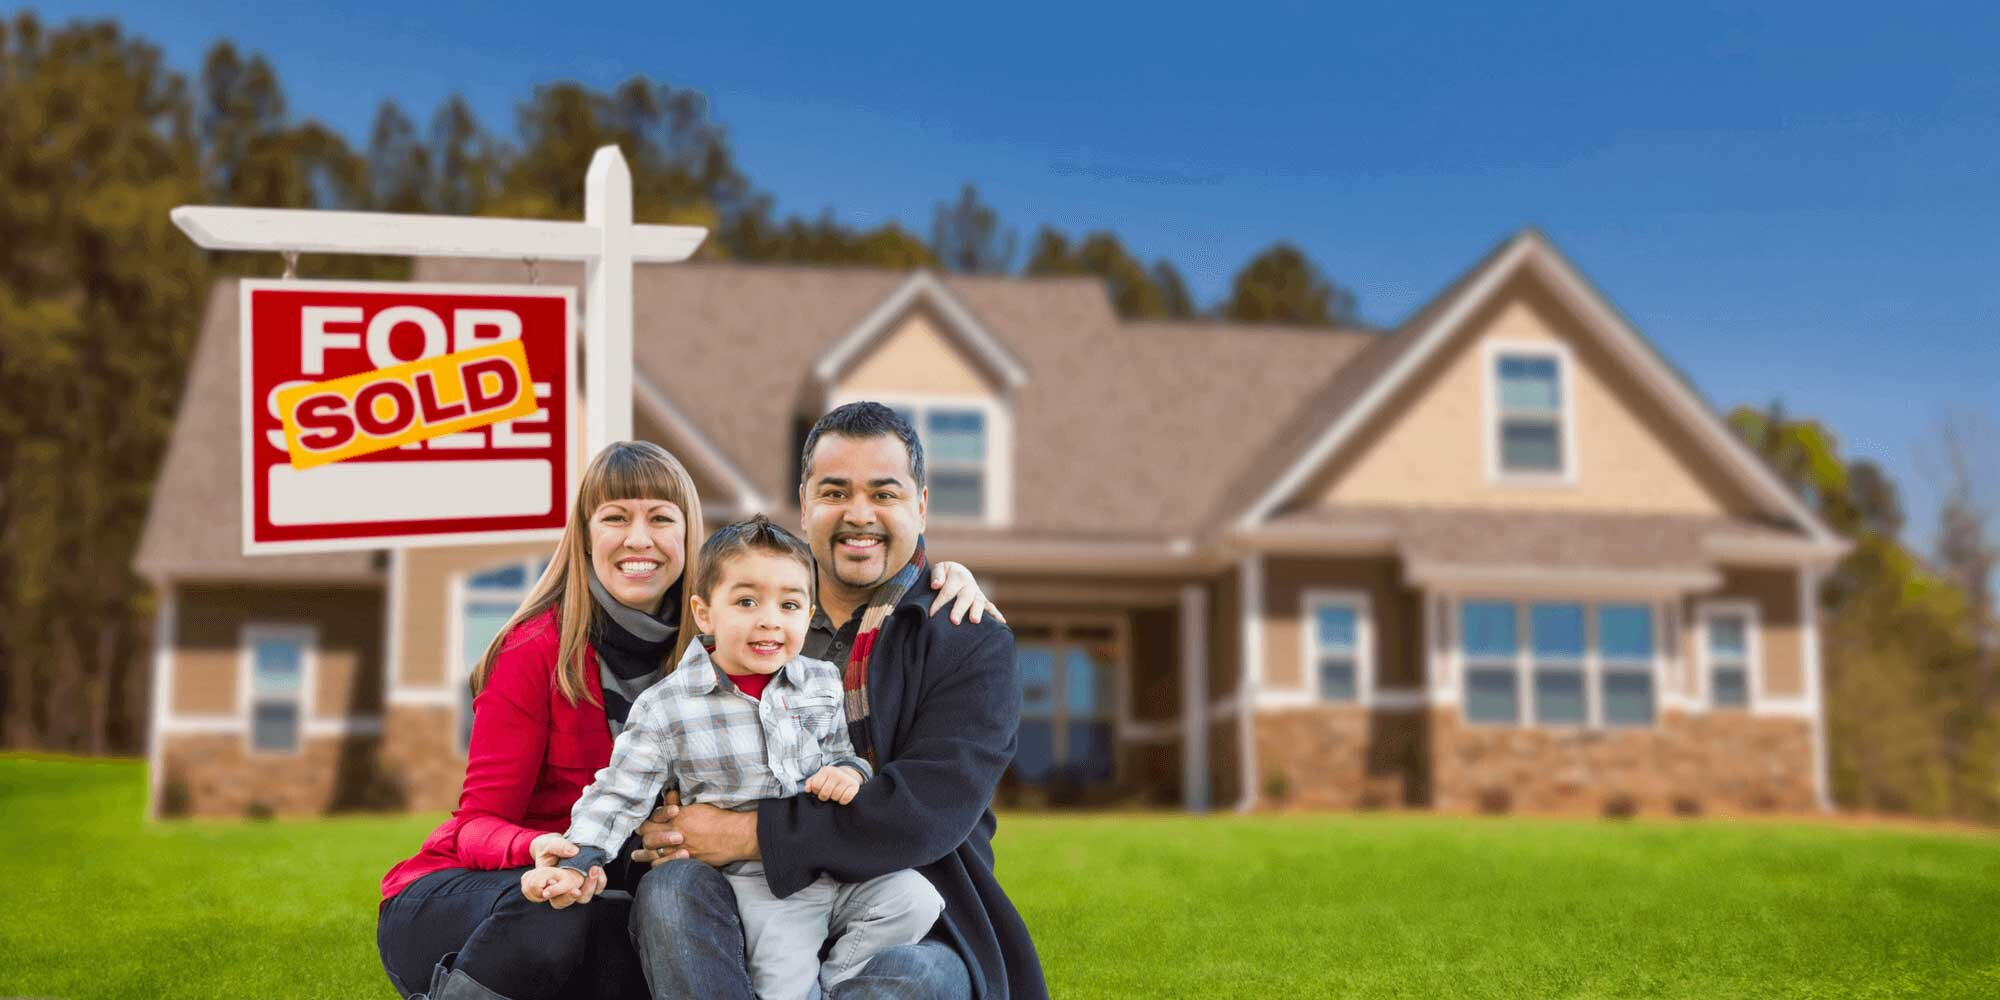 Buy A New Home To Purchase or Renovate. -